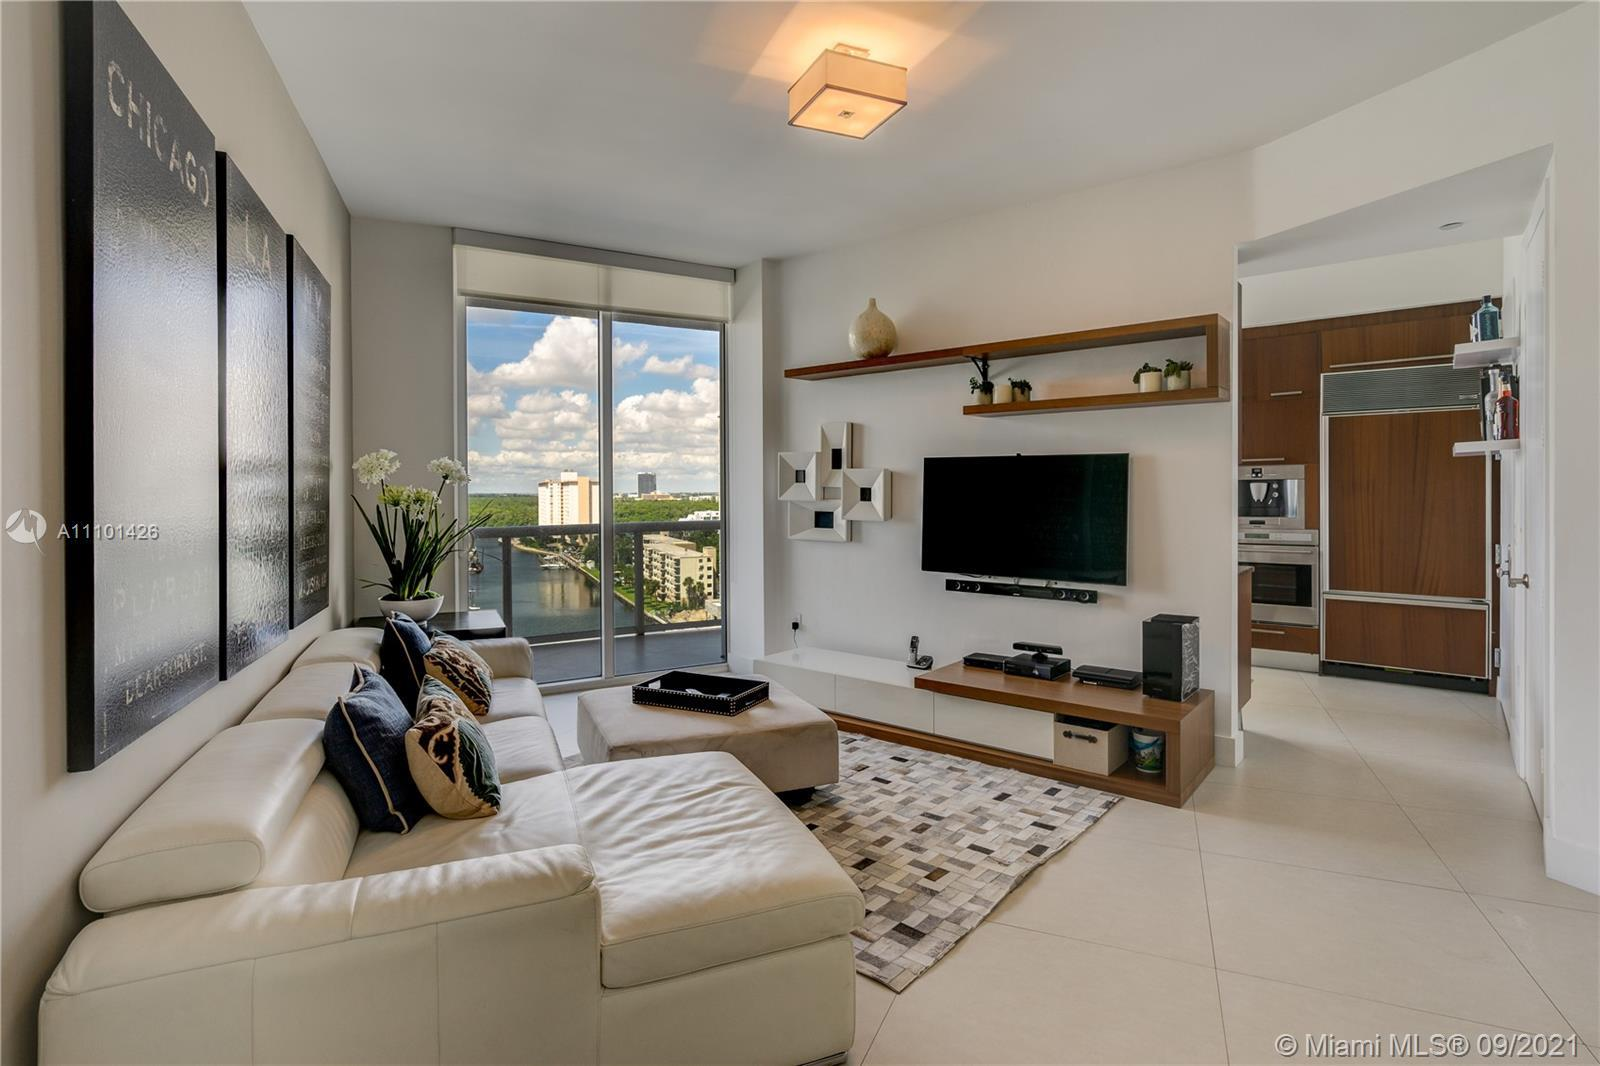 *Best deal at Trump Tower III*. This bright residence with pleasant bay views features wide matte po